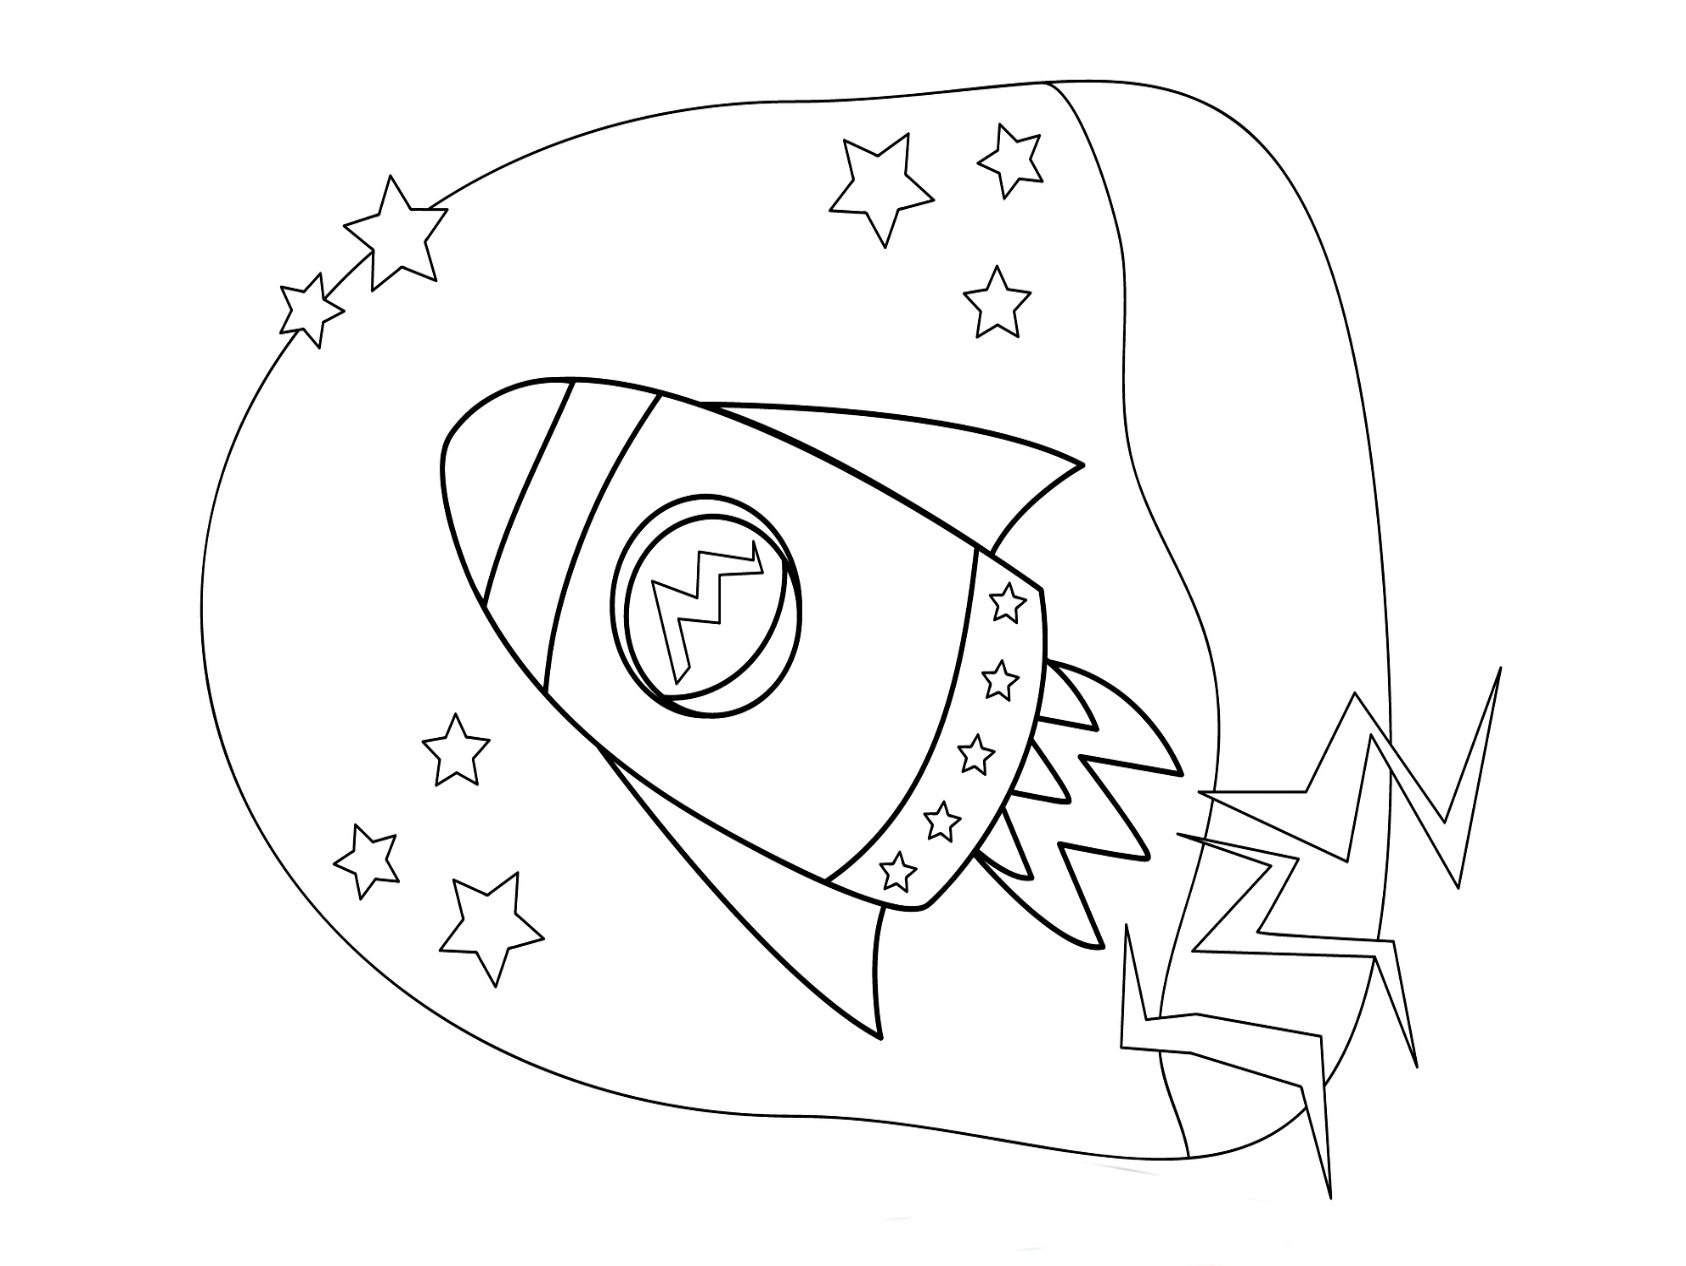 rocket ship coloring pages to print - Coloring Sheets To Print Out